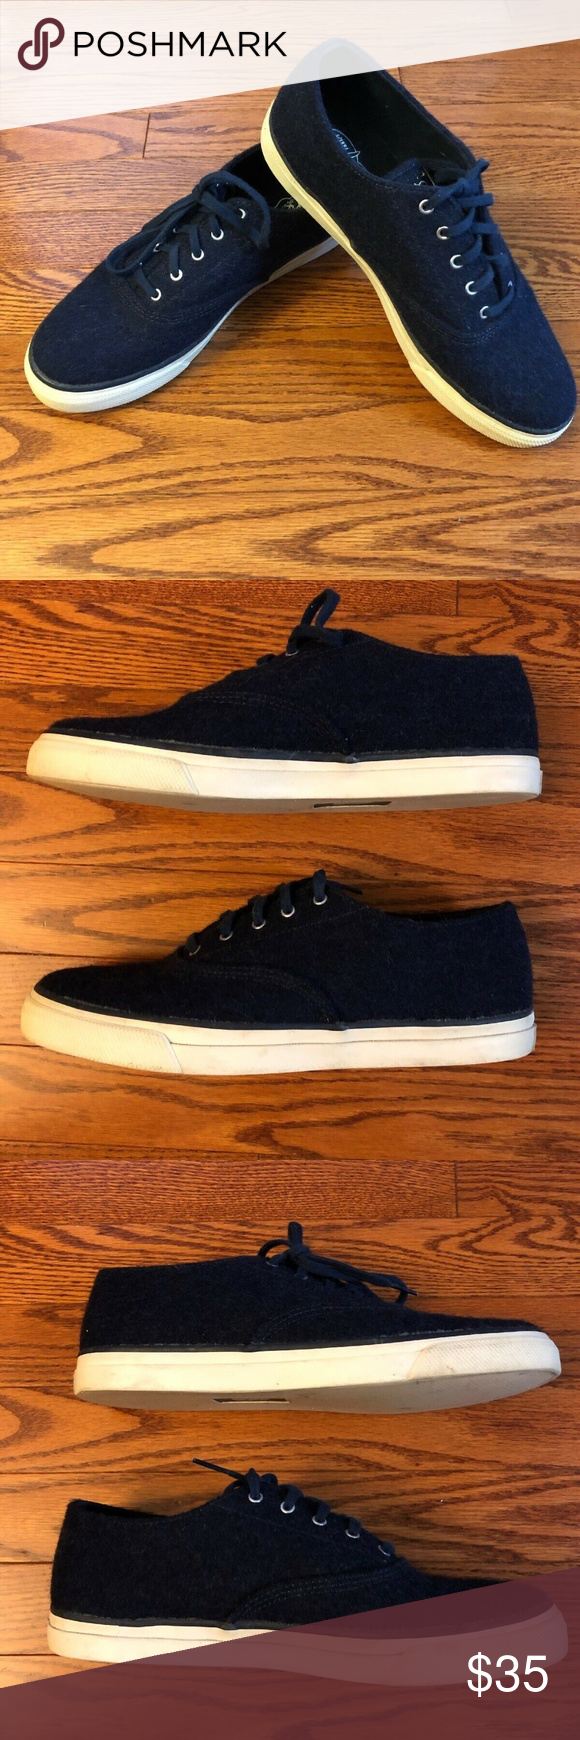 Sperry topsiders Captains CVO Wool Boat